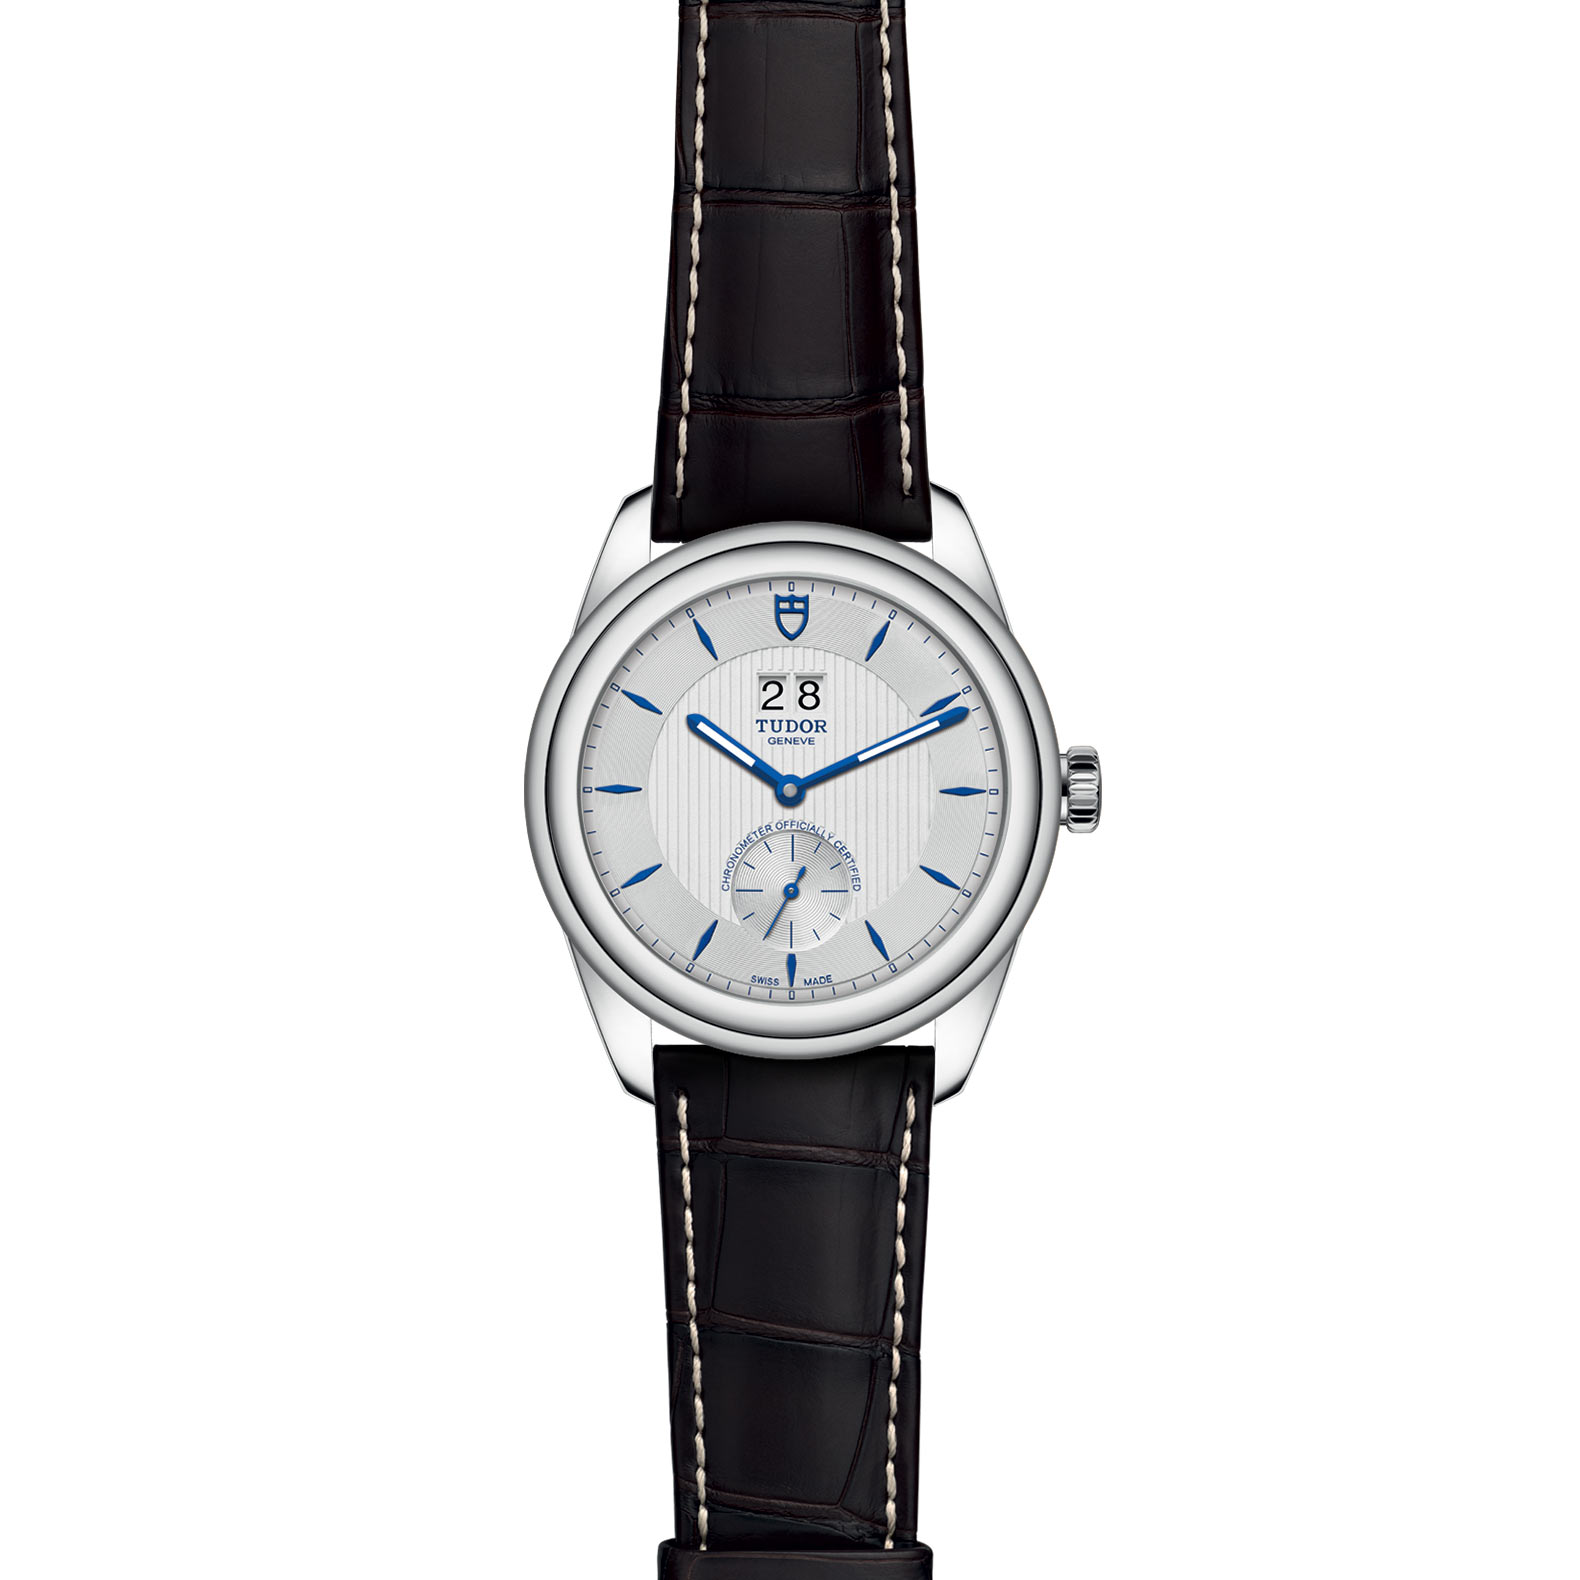 TUDOR Glamour Double Date M57100 0016 Frontfacing